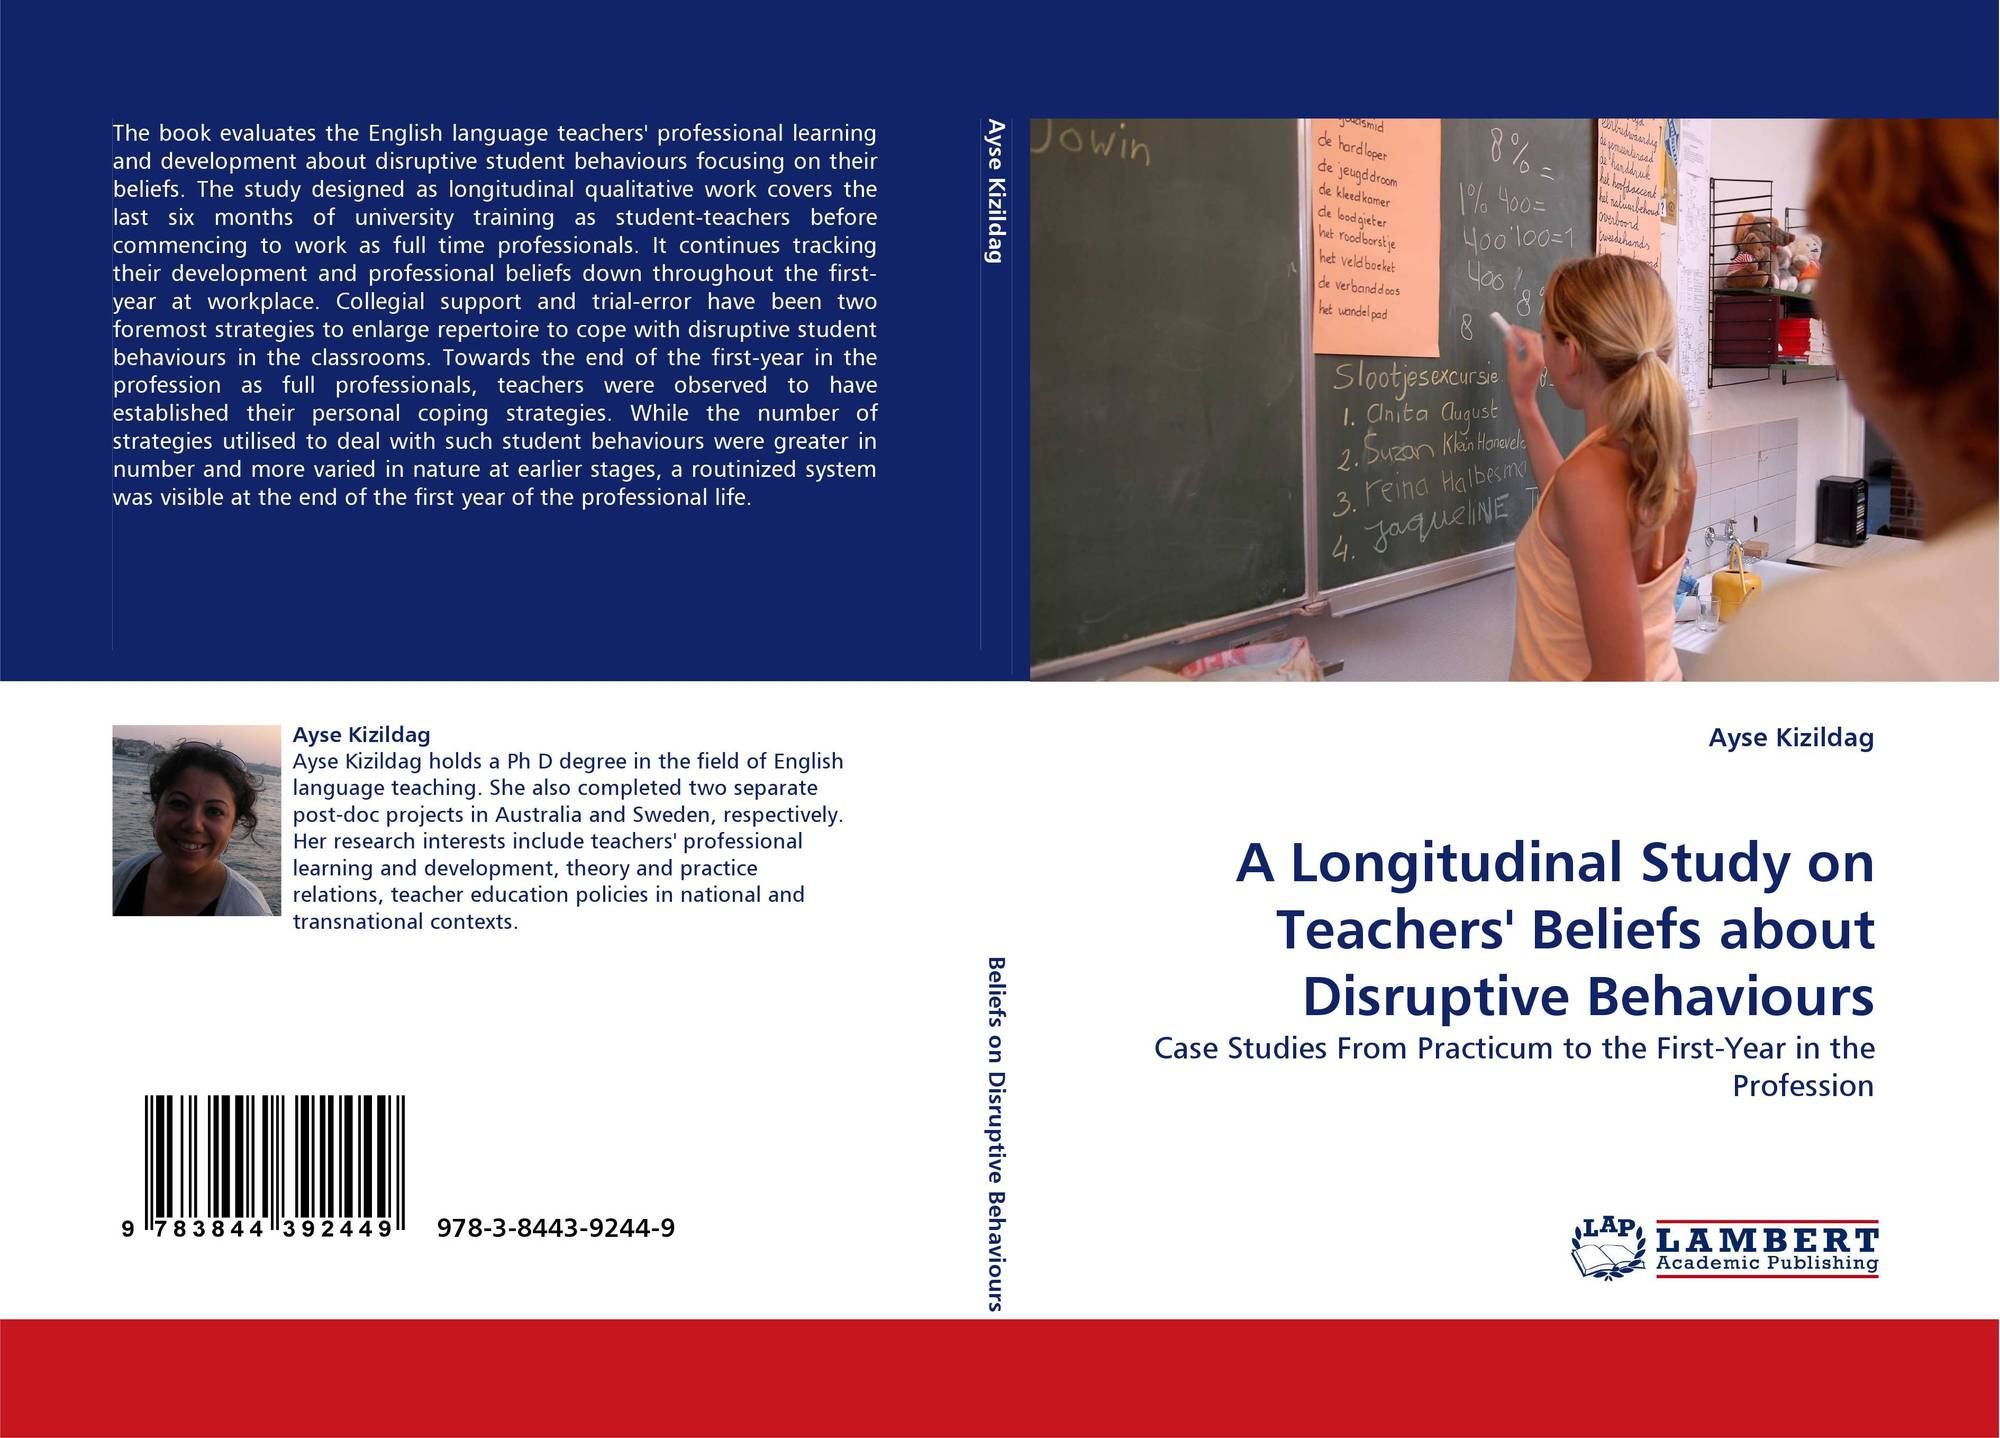 a case study of disruptive behavior Effective strategies for managing difficult student behaviors classroom behavior management case study #1 - adam what is the disruptive behavior.